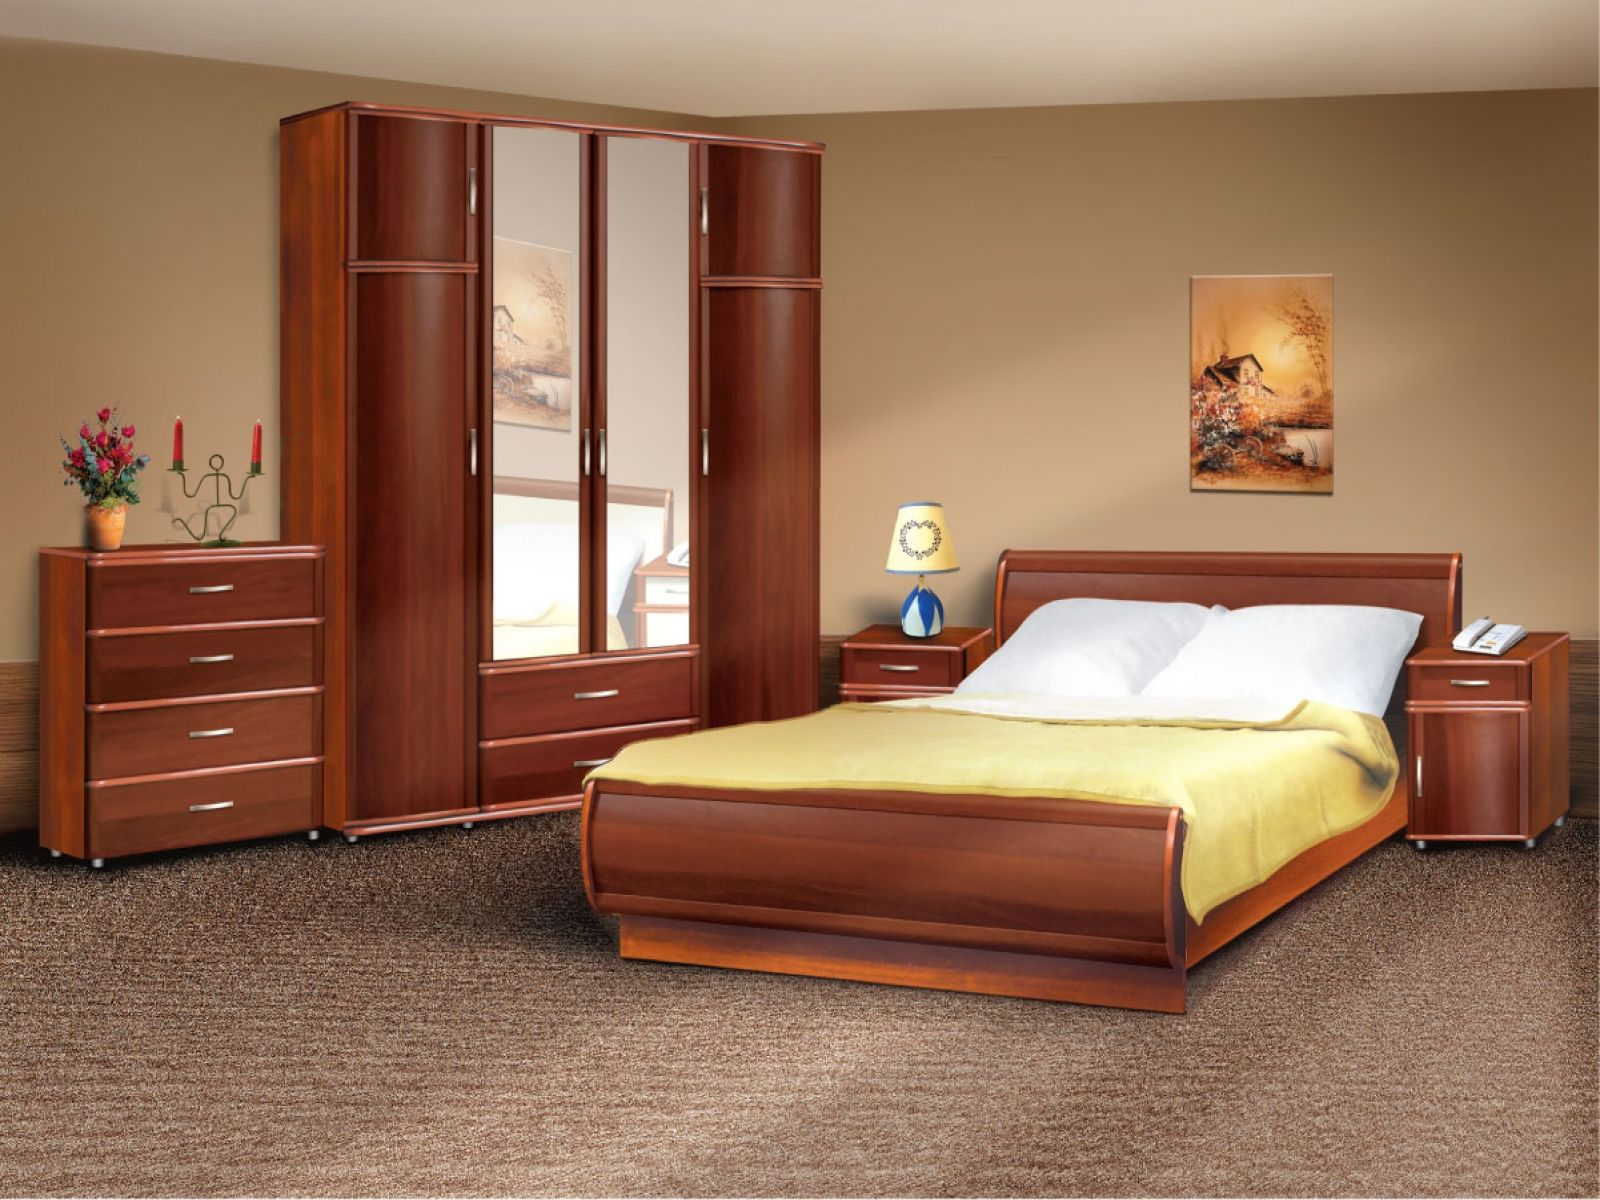 Wooden bed furniture design - Tips For Buying Bedroom Furniture Interior Design Leep Is One Of The Most Significant Things That We Do We Should Sleep Well In Order To Be Clear